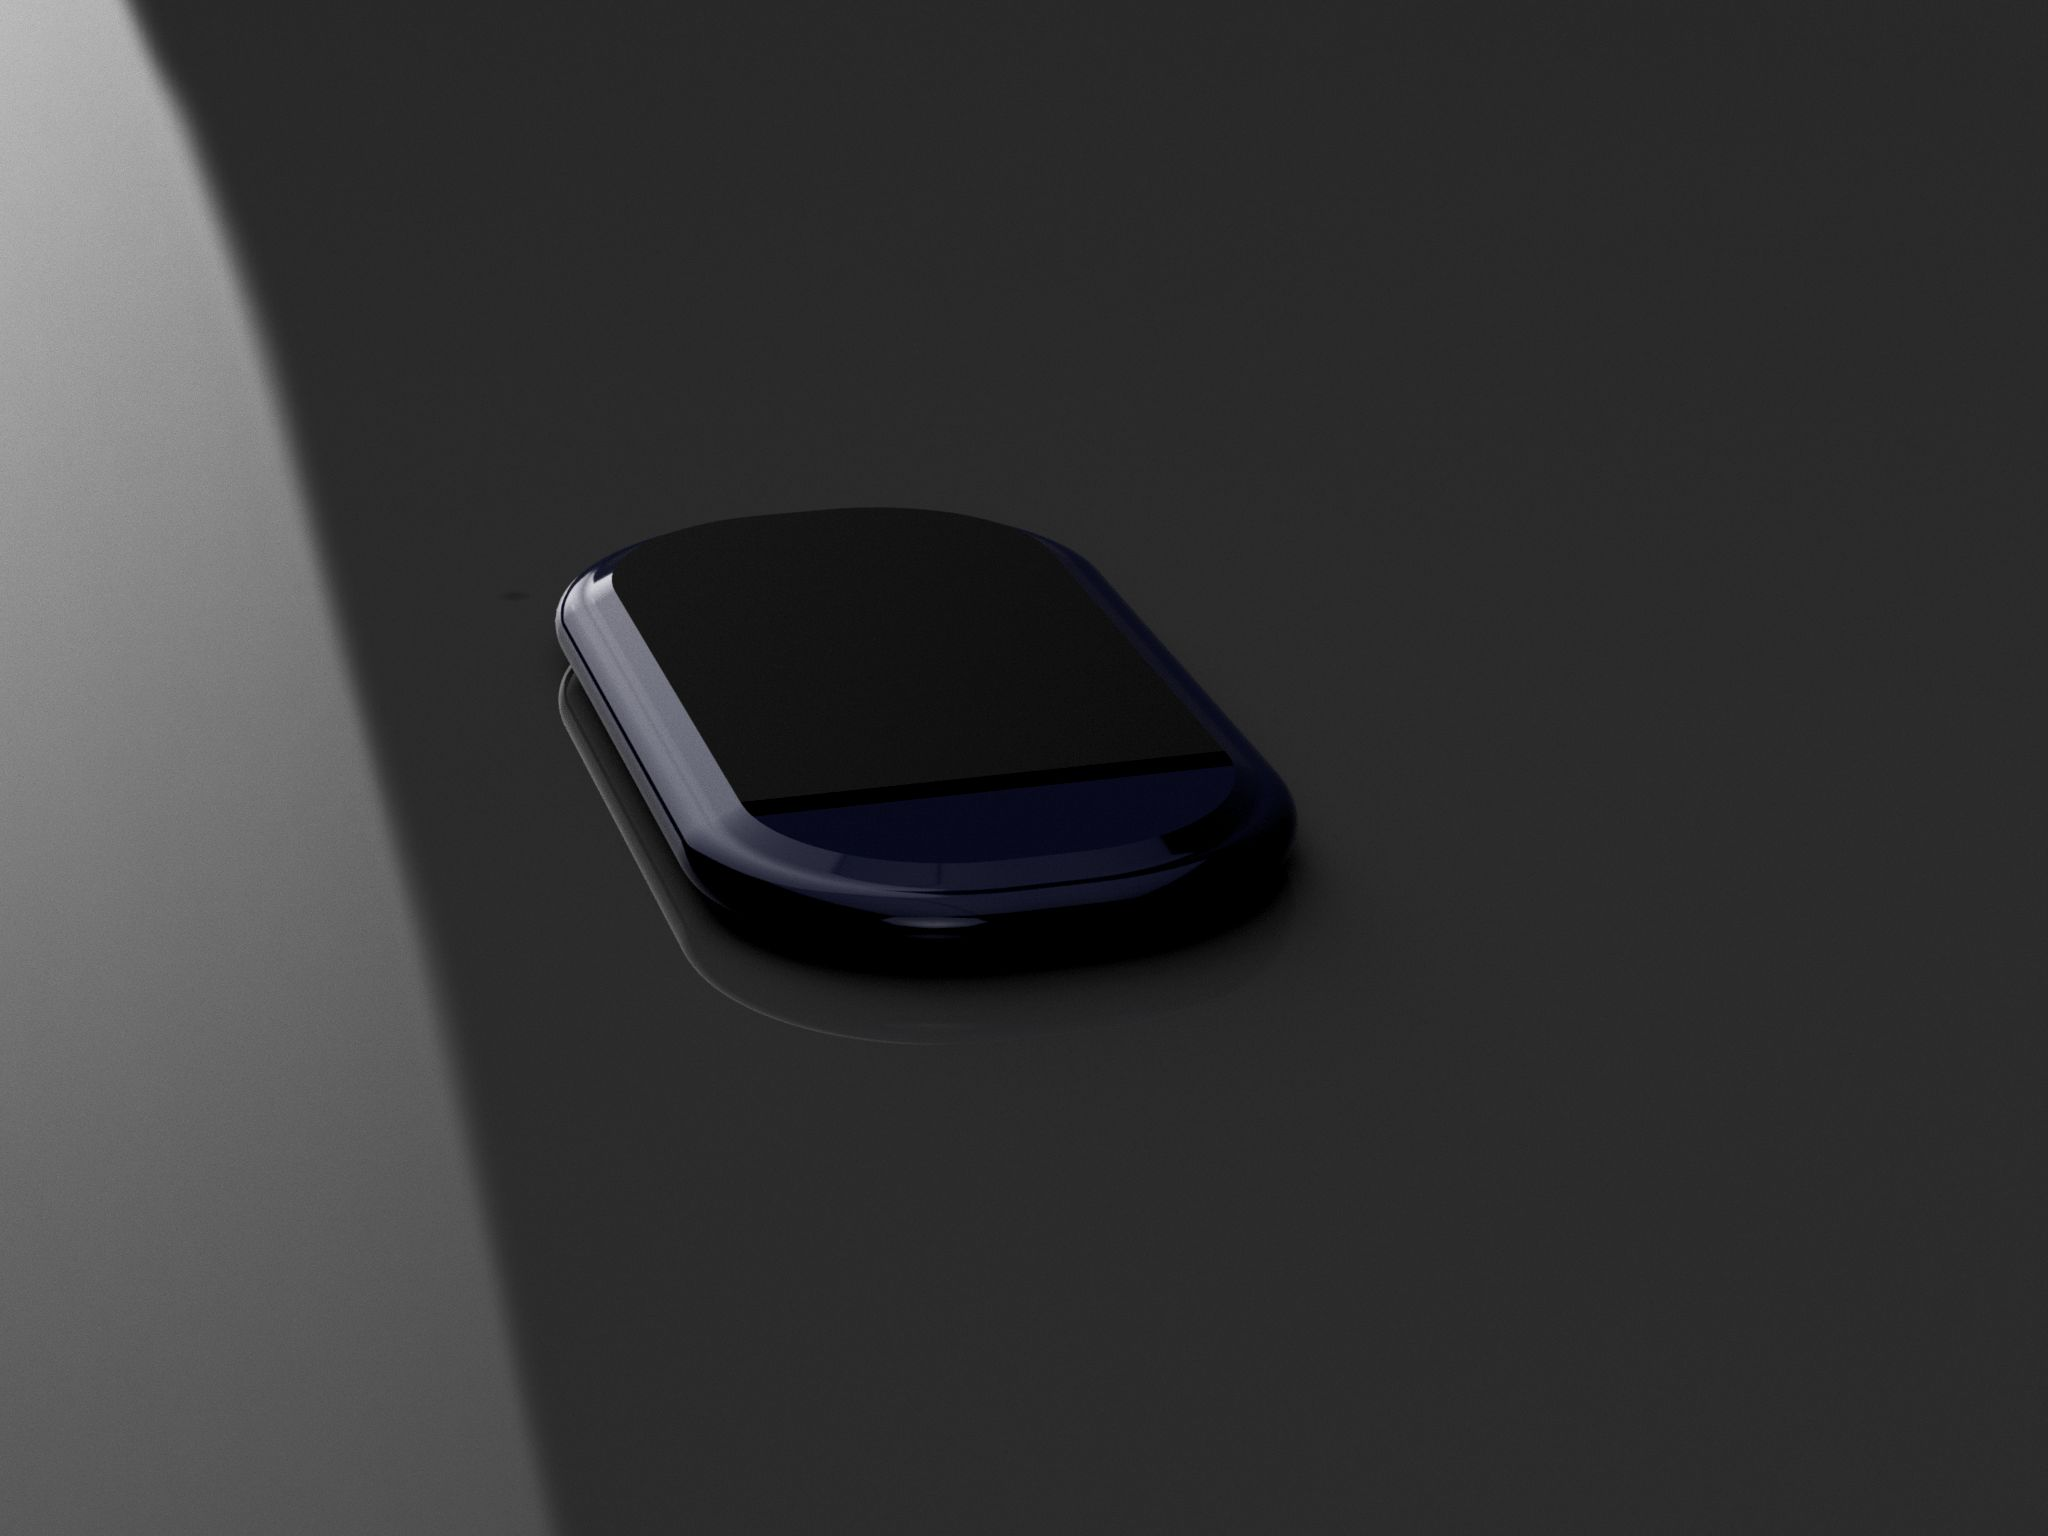 Car Key Conceptautodesk Online Gallery